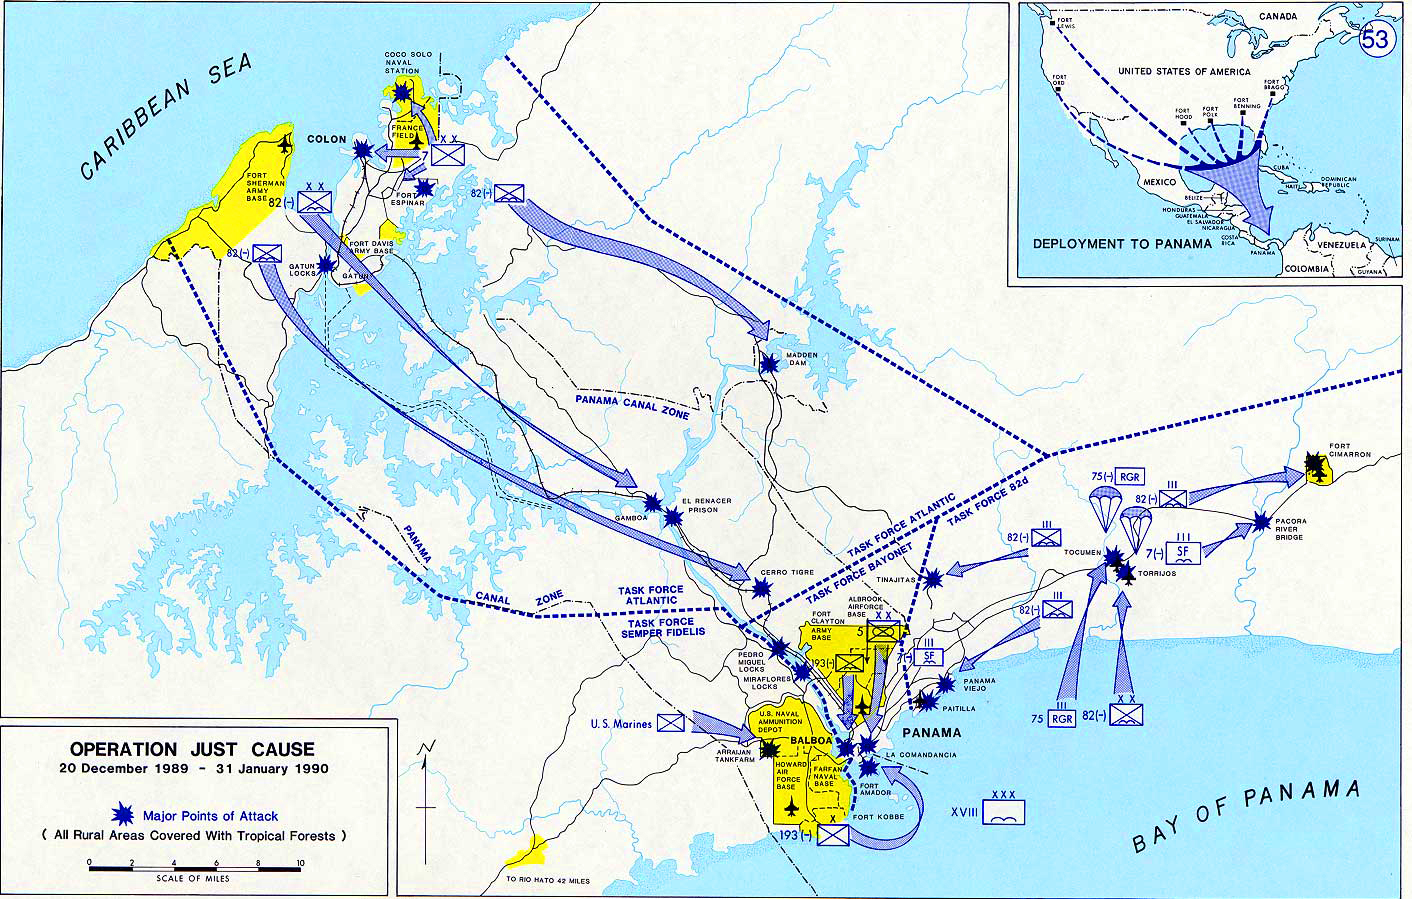 History Map of Panama 1990. Operation JUST CAUSE, December, 20, 1989 - January 31, 1990.